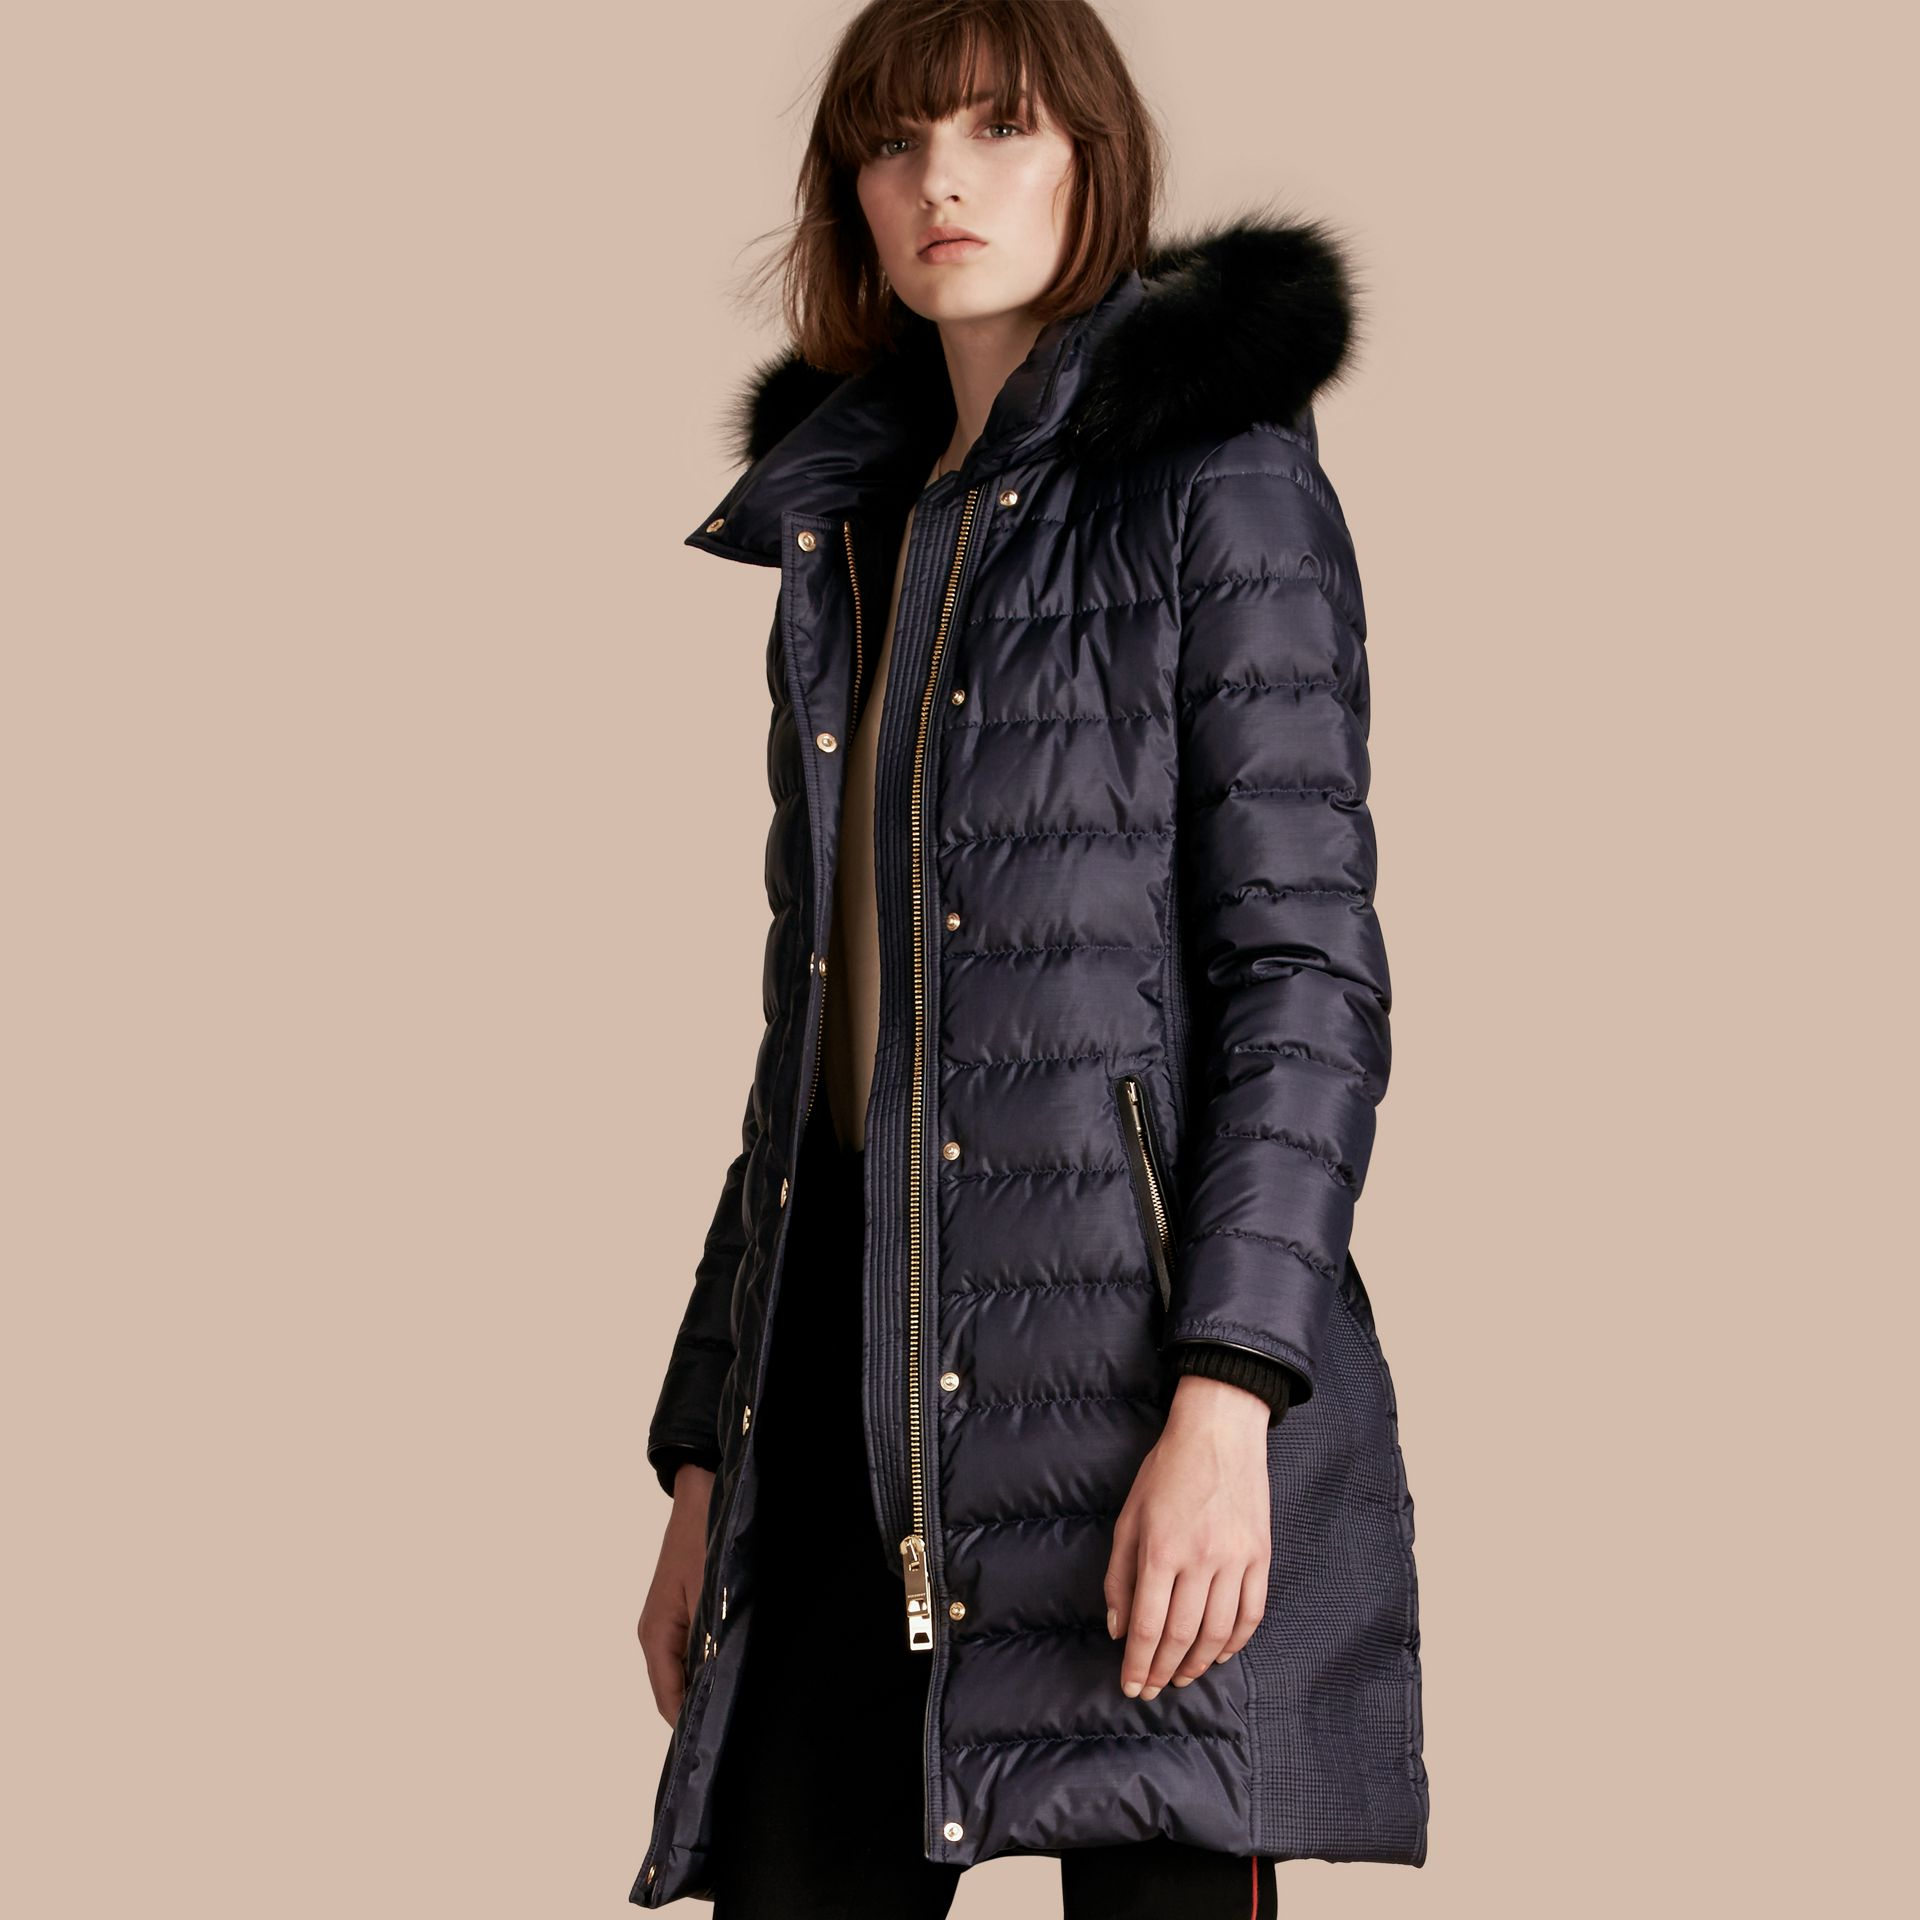 Navy Down-filled Coat with Fur-trimmed Hood Navy - gallery image 1